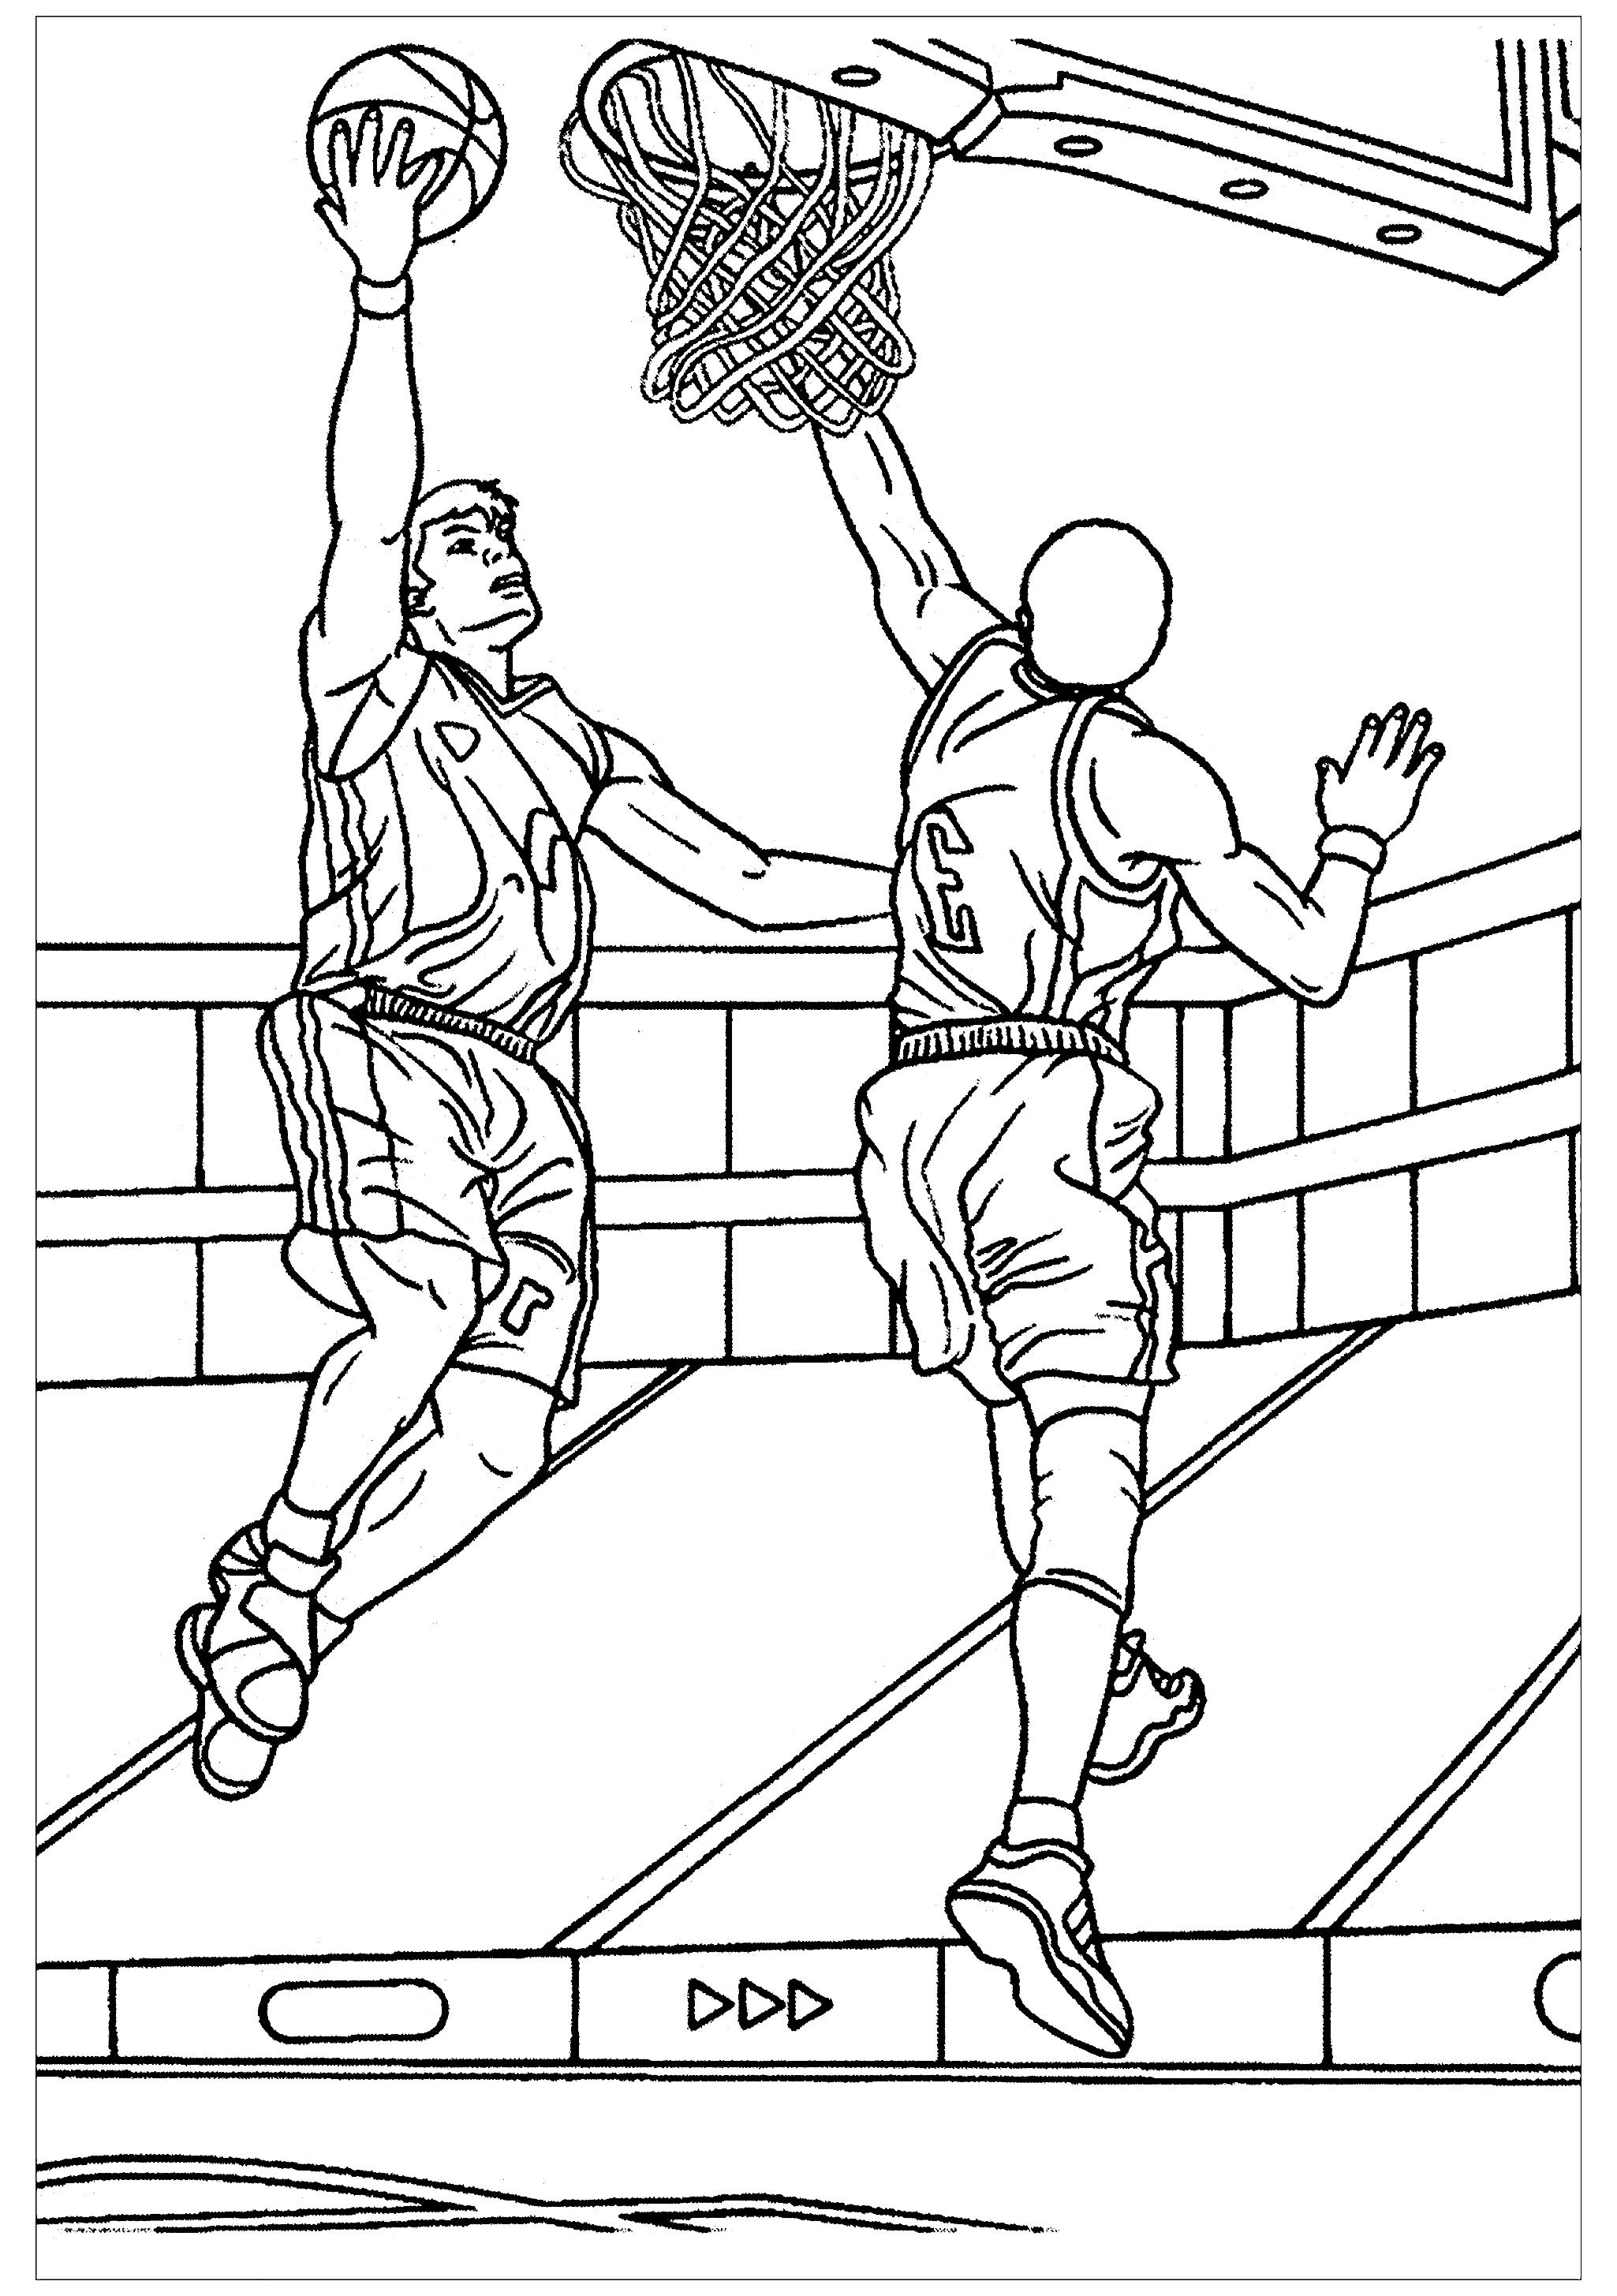 - Basketball To Color For Children - Basketball Kids Coloring Pages